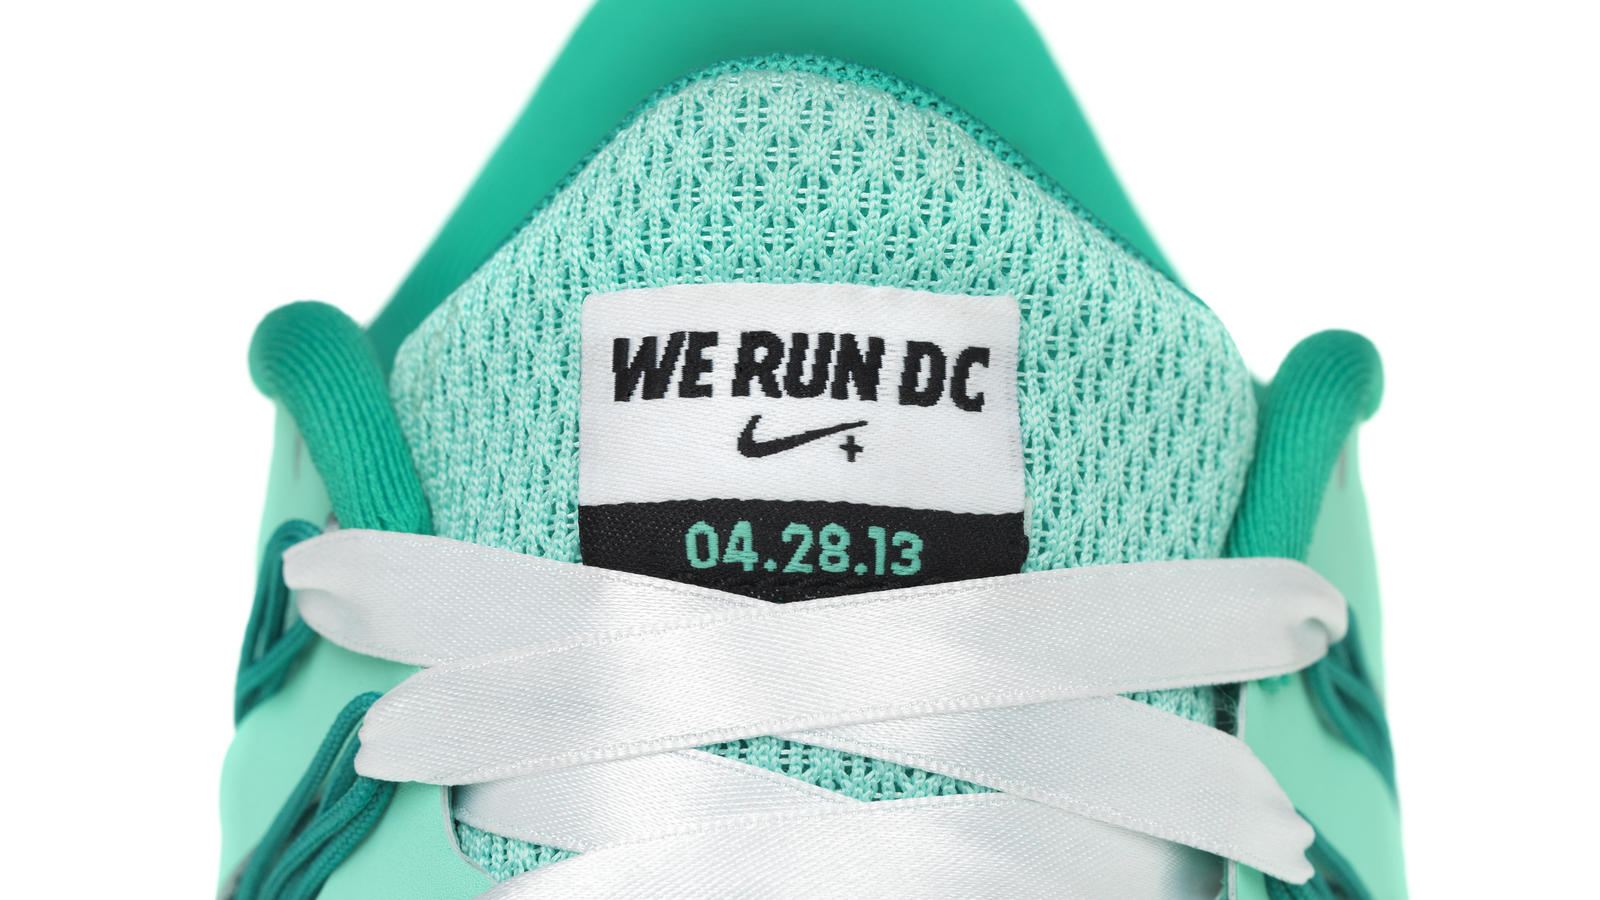 nike_werundclimitedcollection_free_run_detail